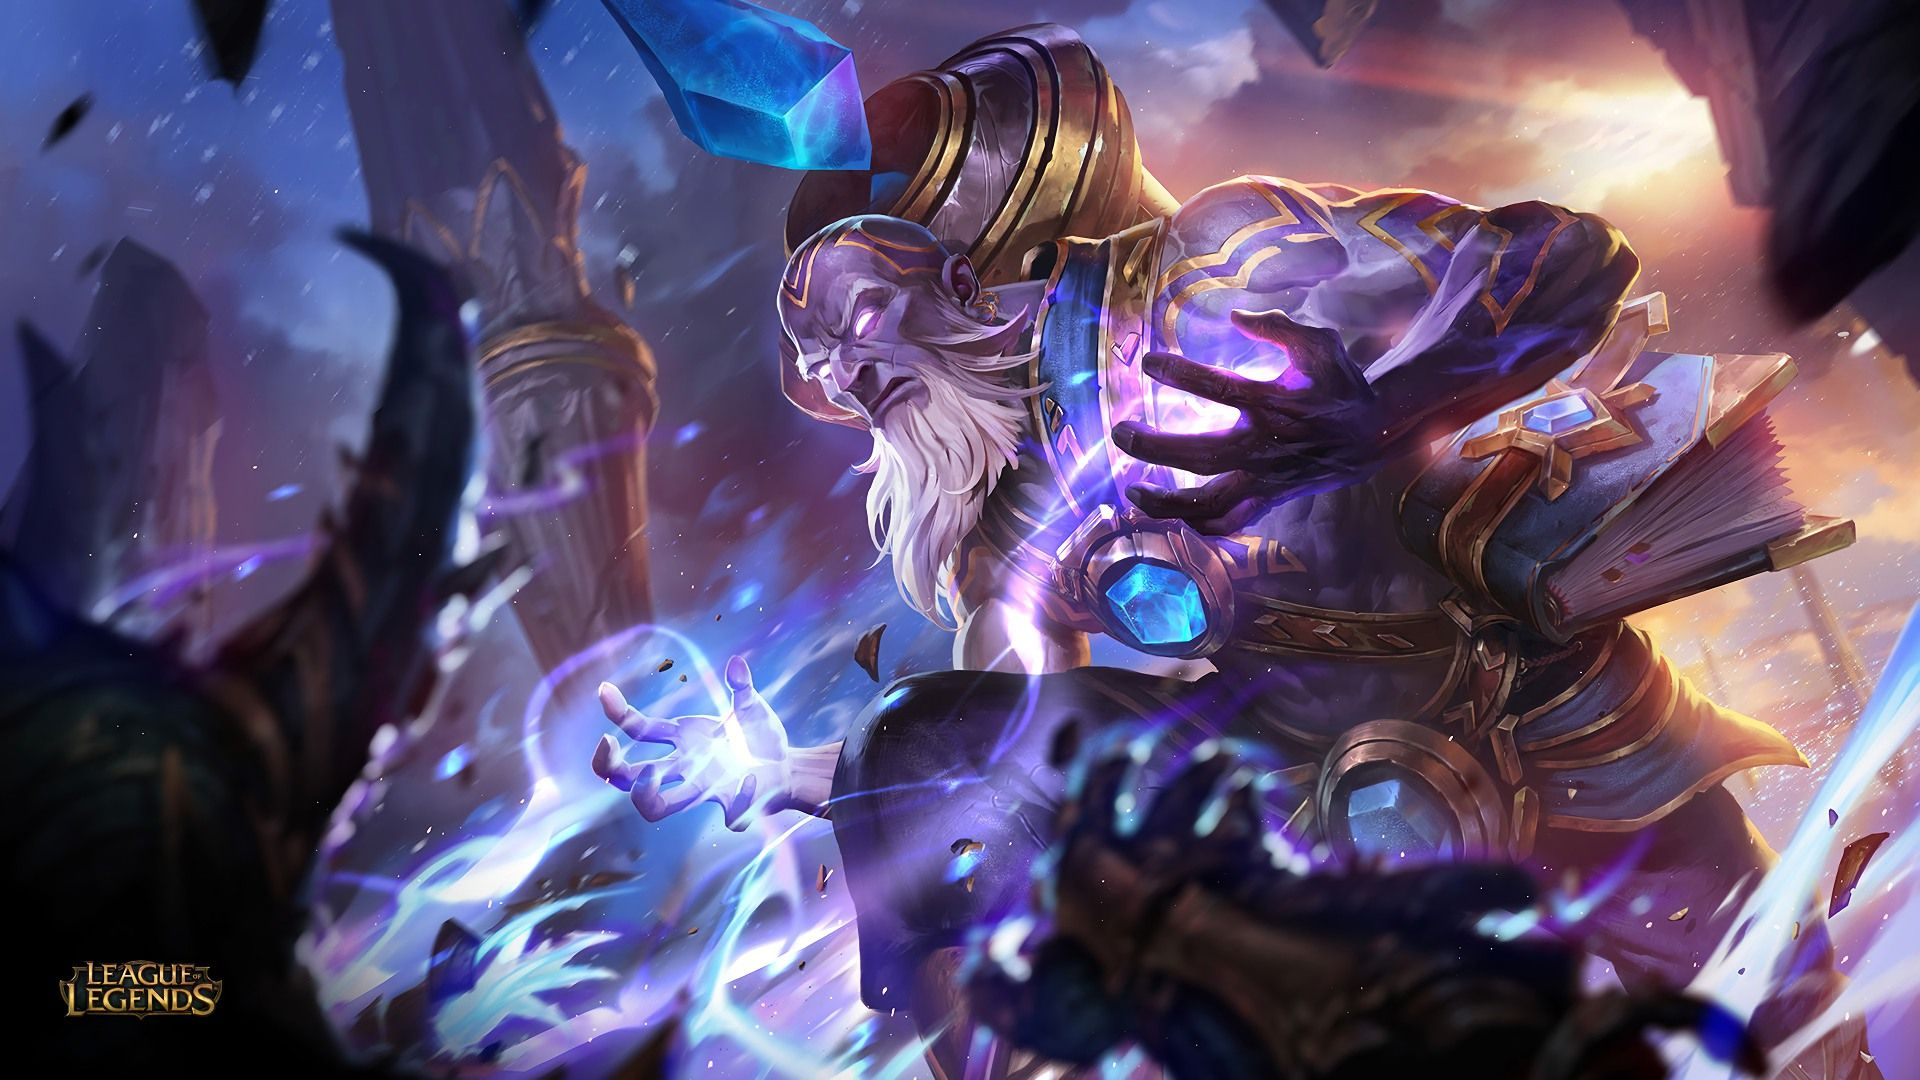 Download Wallpaper Triumphant Ryze Skin Full Hd On Gamewalls